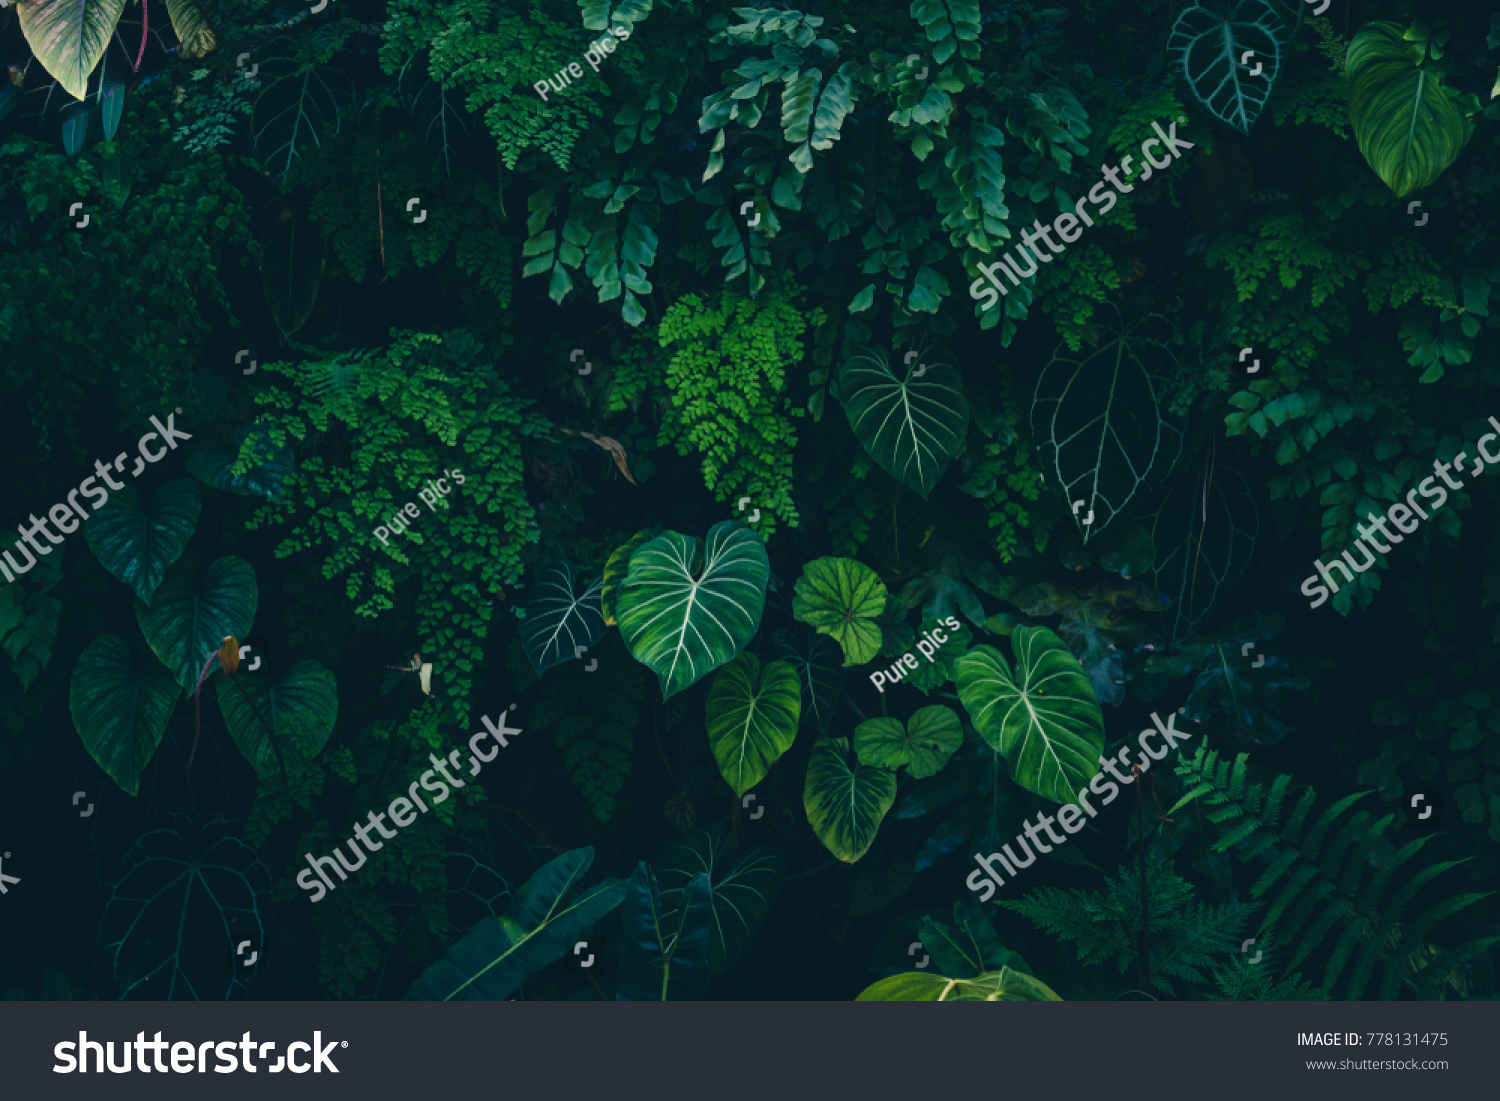 Tropical leaves texture,Abstract nature leaf green texture background.vintage dark tone,picture can used wallpaper desktop.